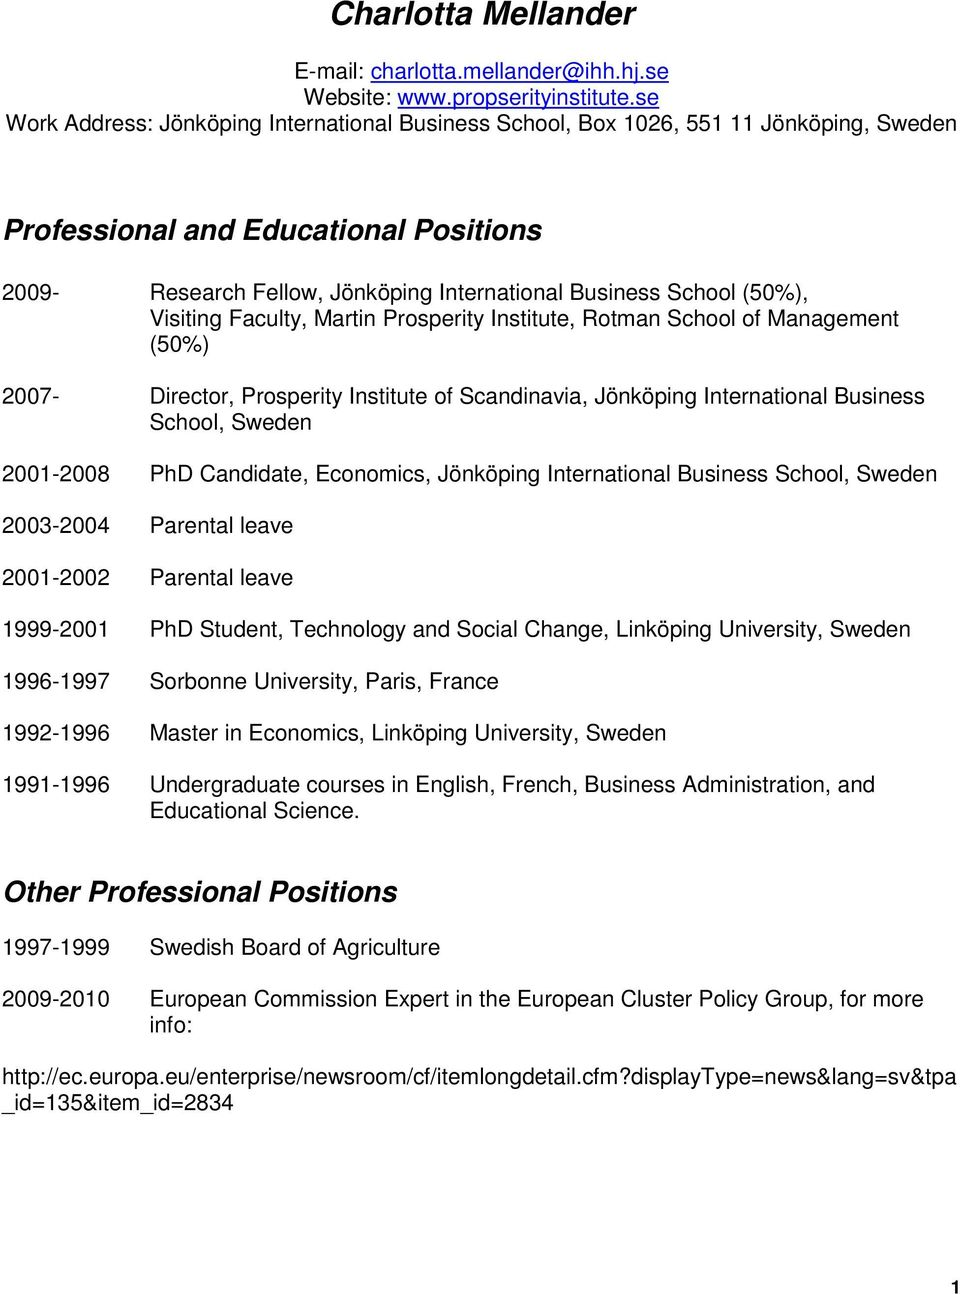 (50%), Visiting Faculty, Martin Prosperity Institute, Rotman School of Management (50%) 2007- Director, Prosperity Institute of Scandinavia, Jönköping International Business School, Sweden 2001-2008